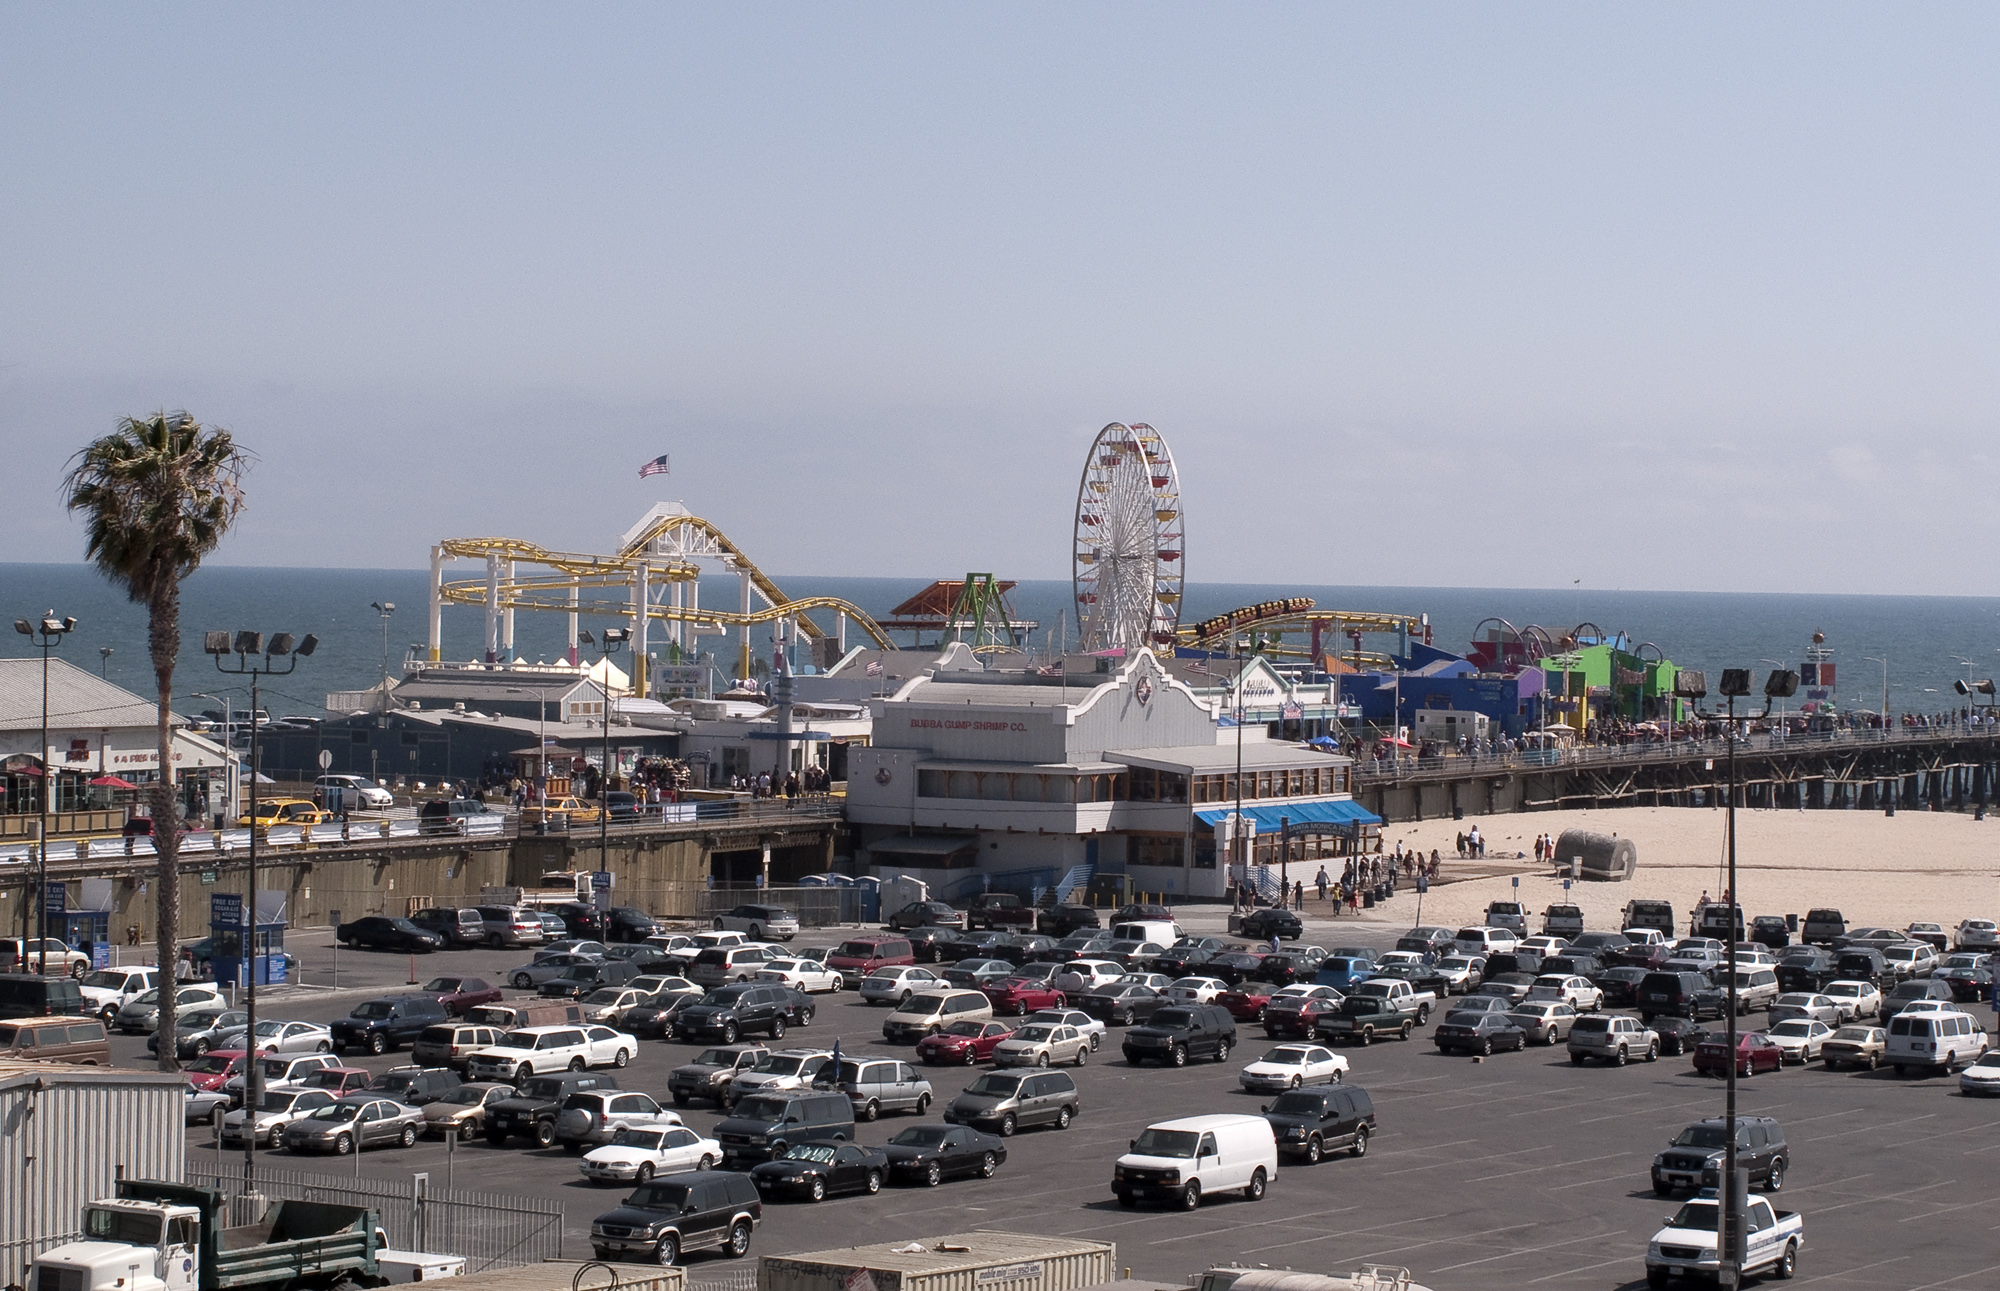 New Restaurant On Santa Monica Pier